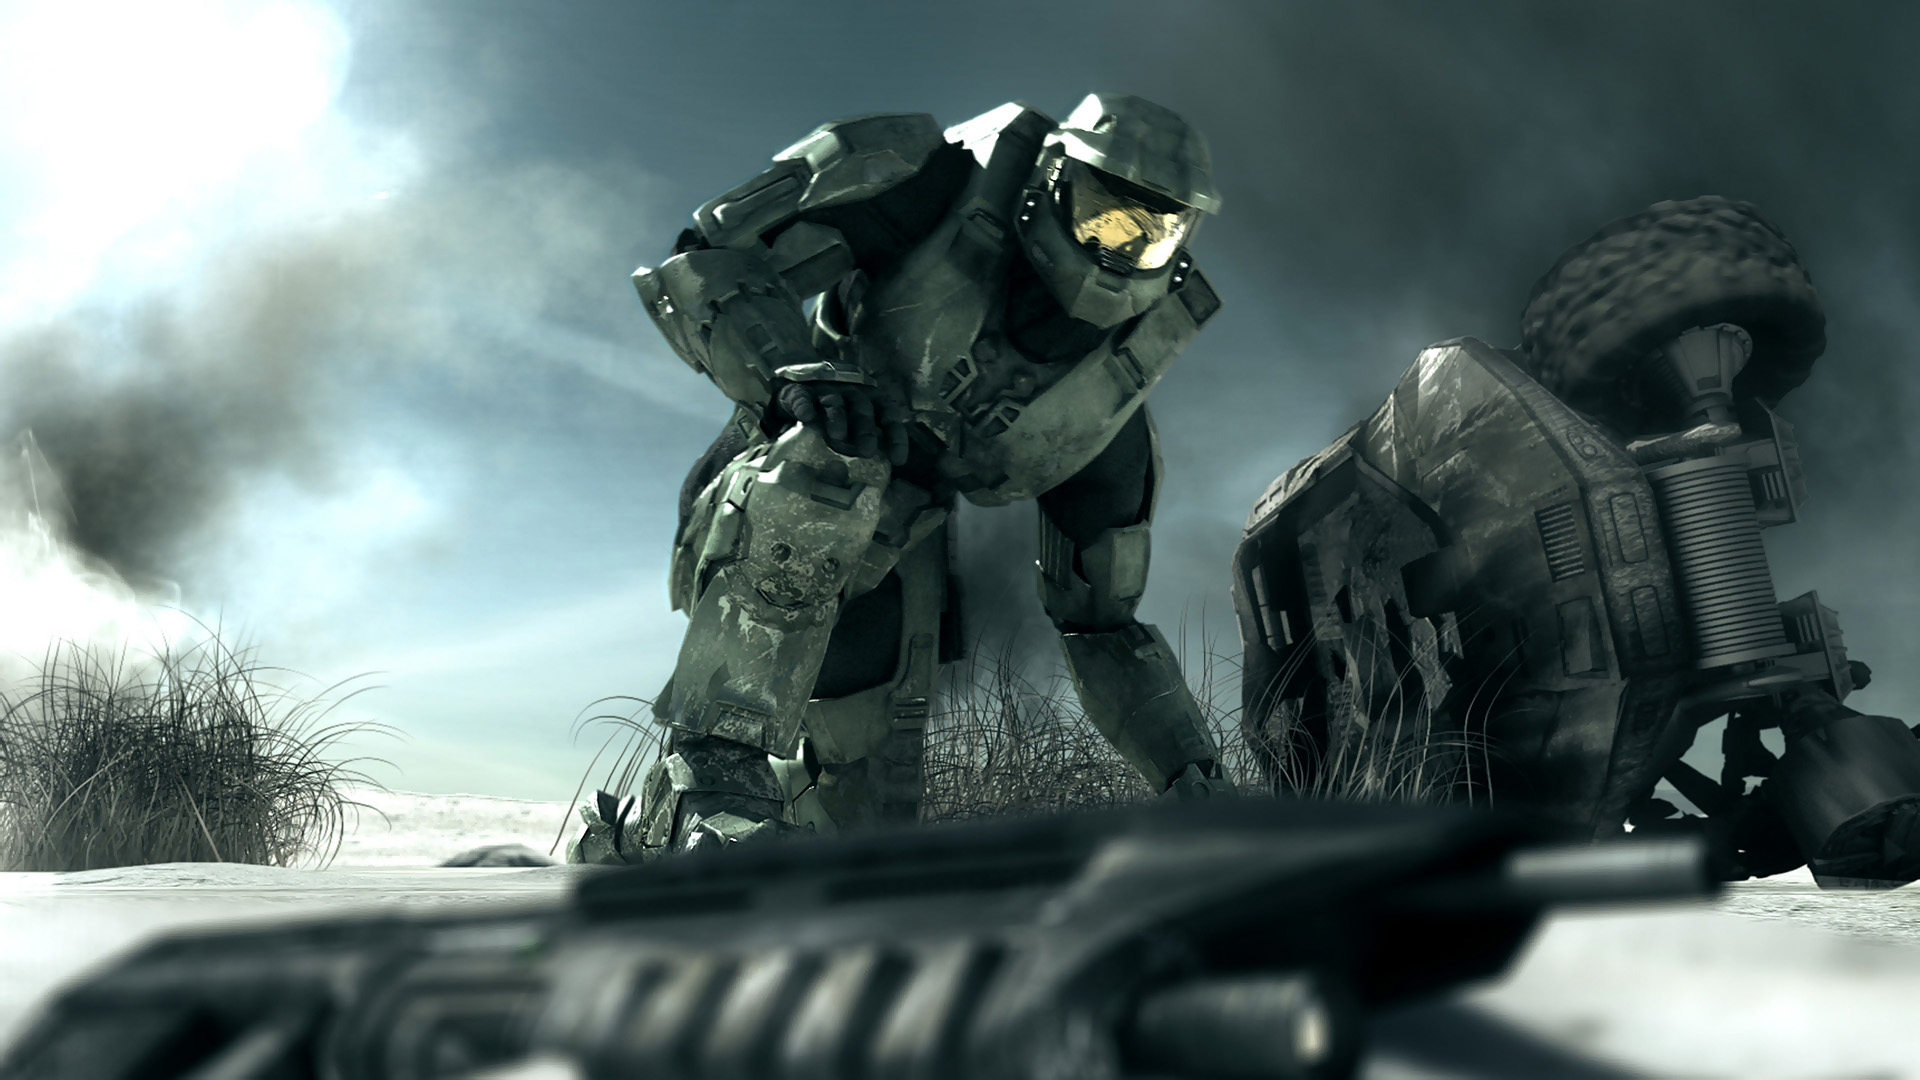 Halo Combat Evolved Hd Wallpaper Background Image 1920x1080 Id 518436 Wallpaper Abyss